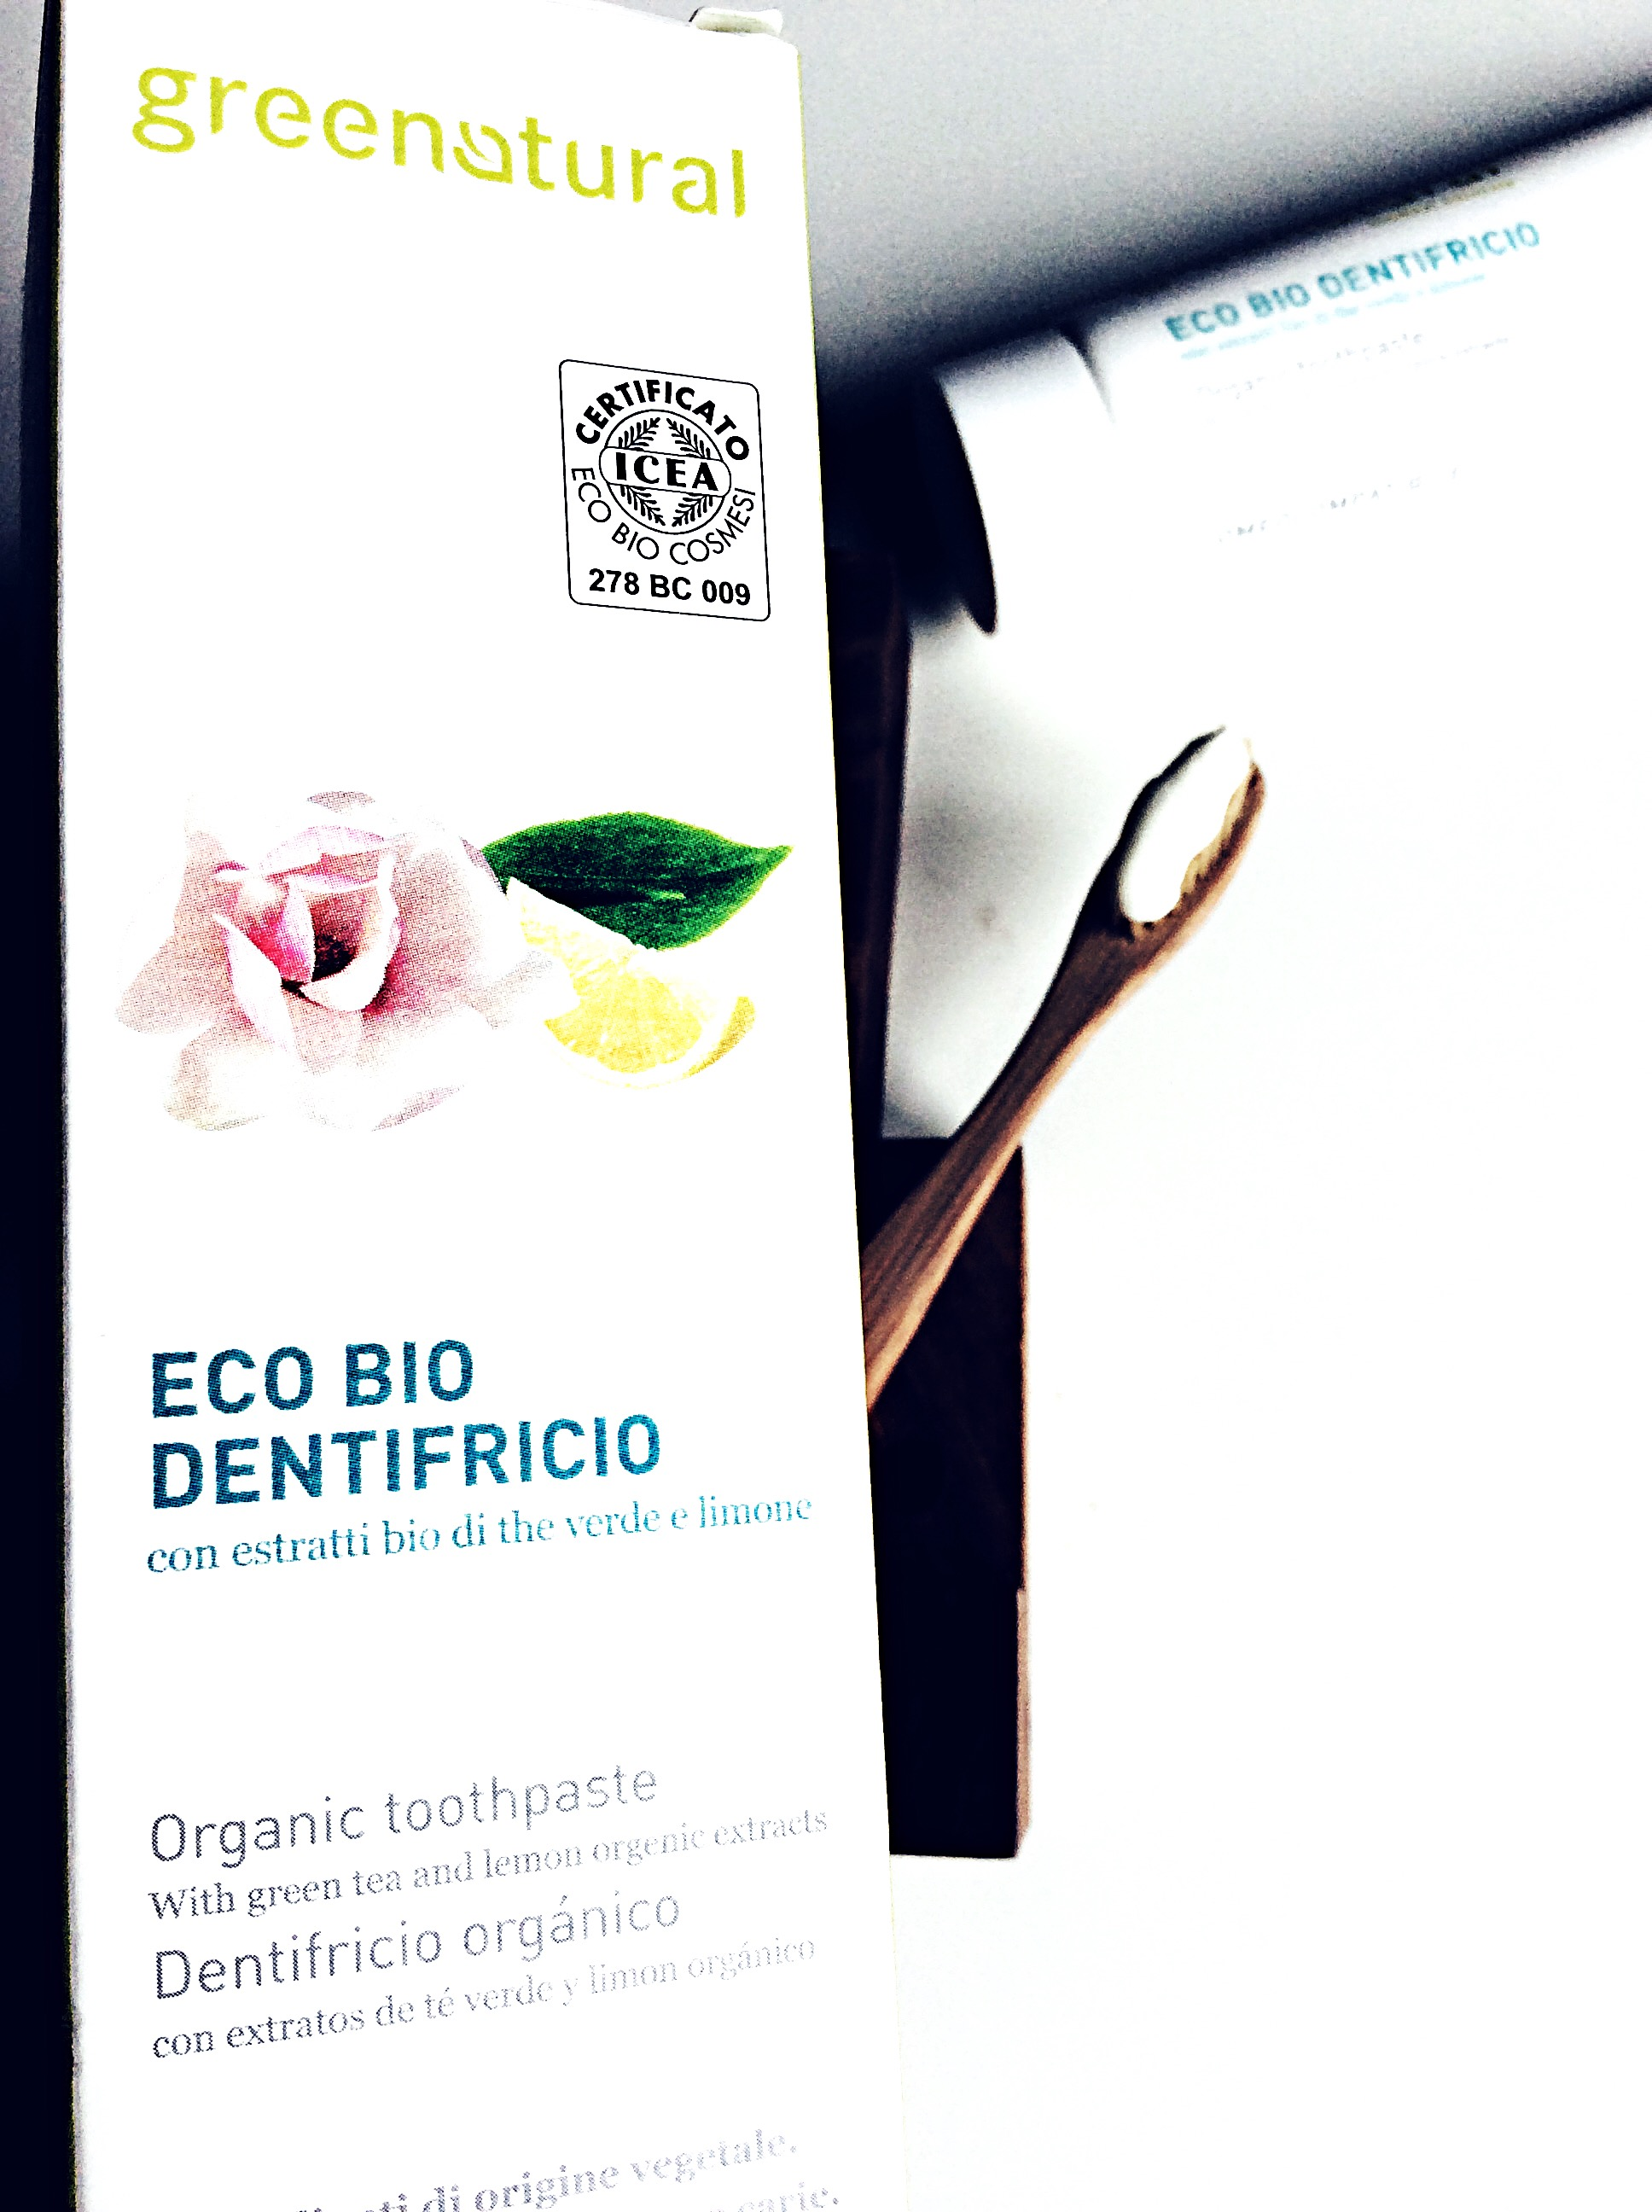 Dentifricio Greenatural